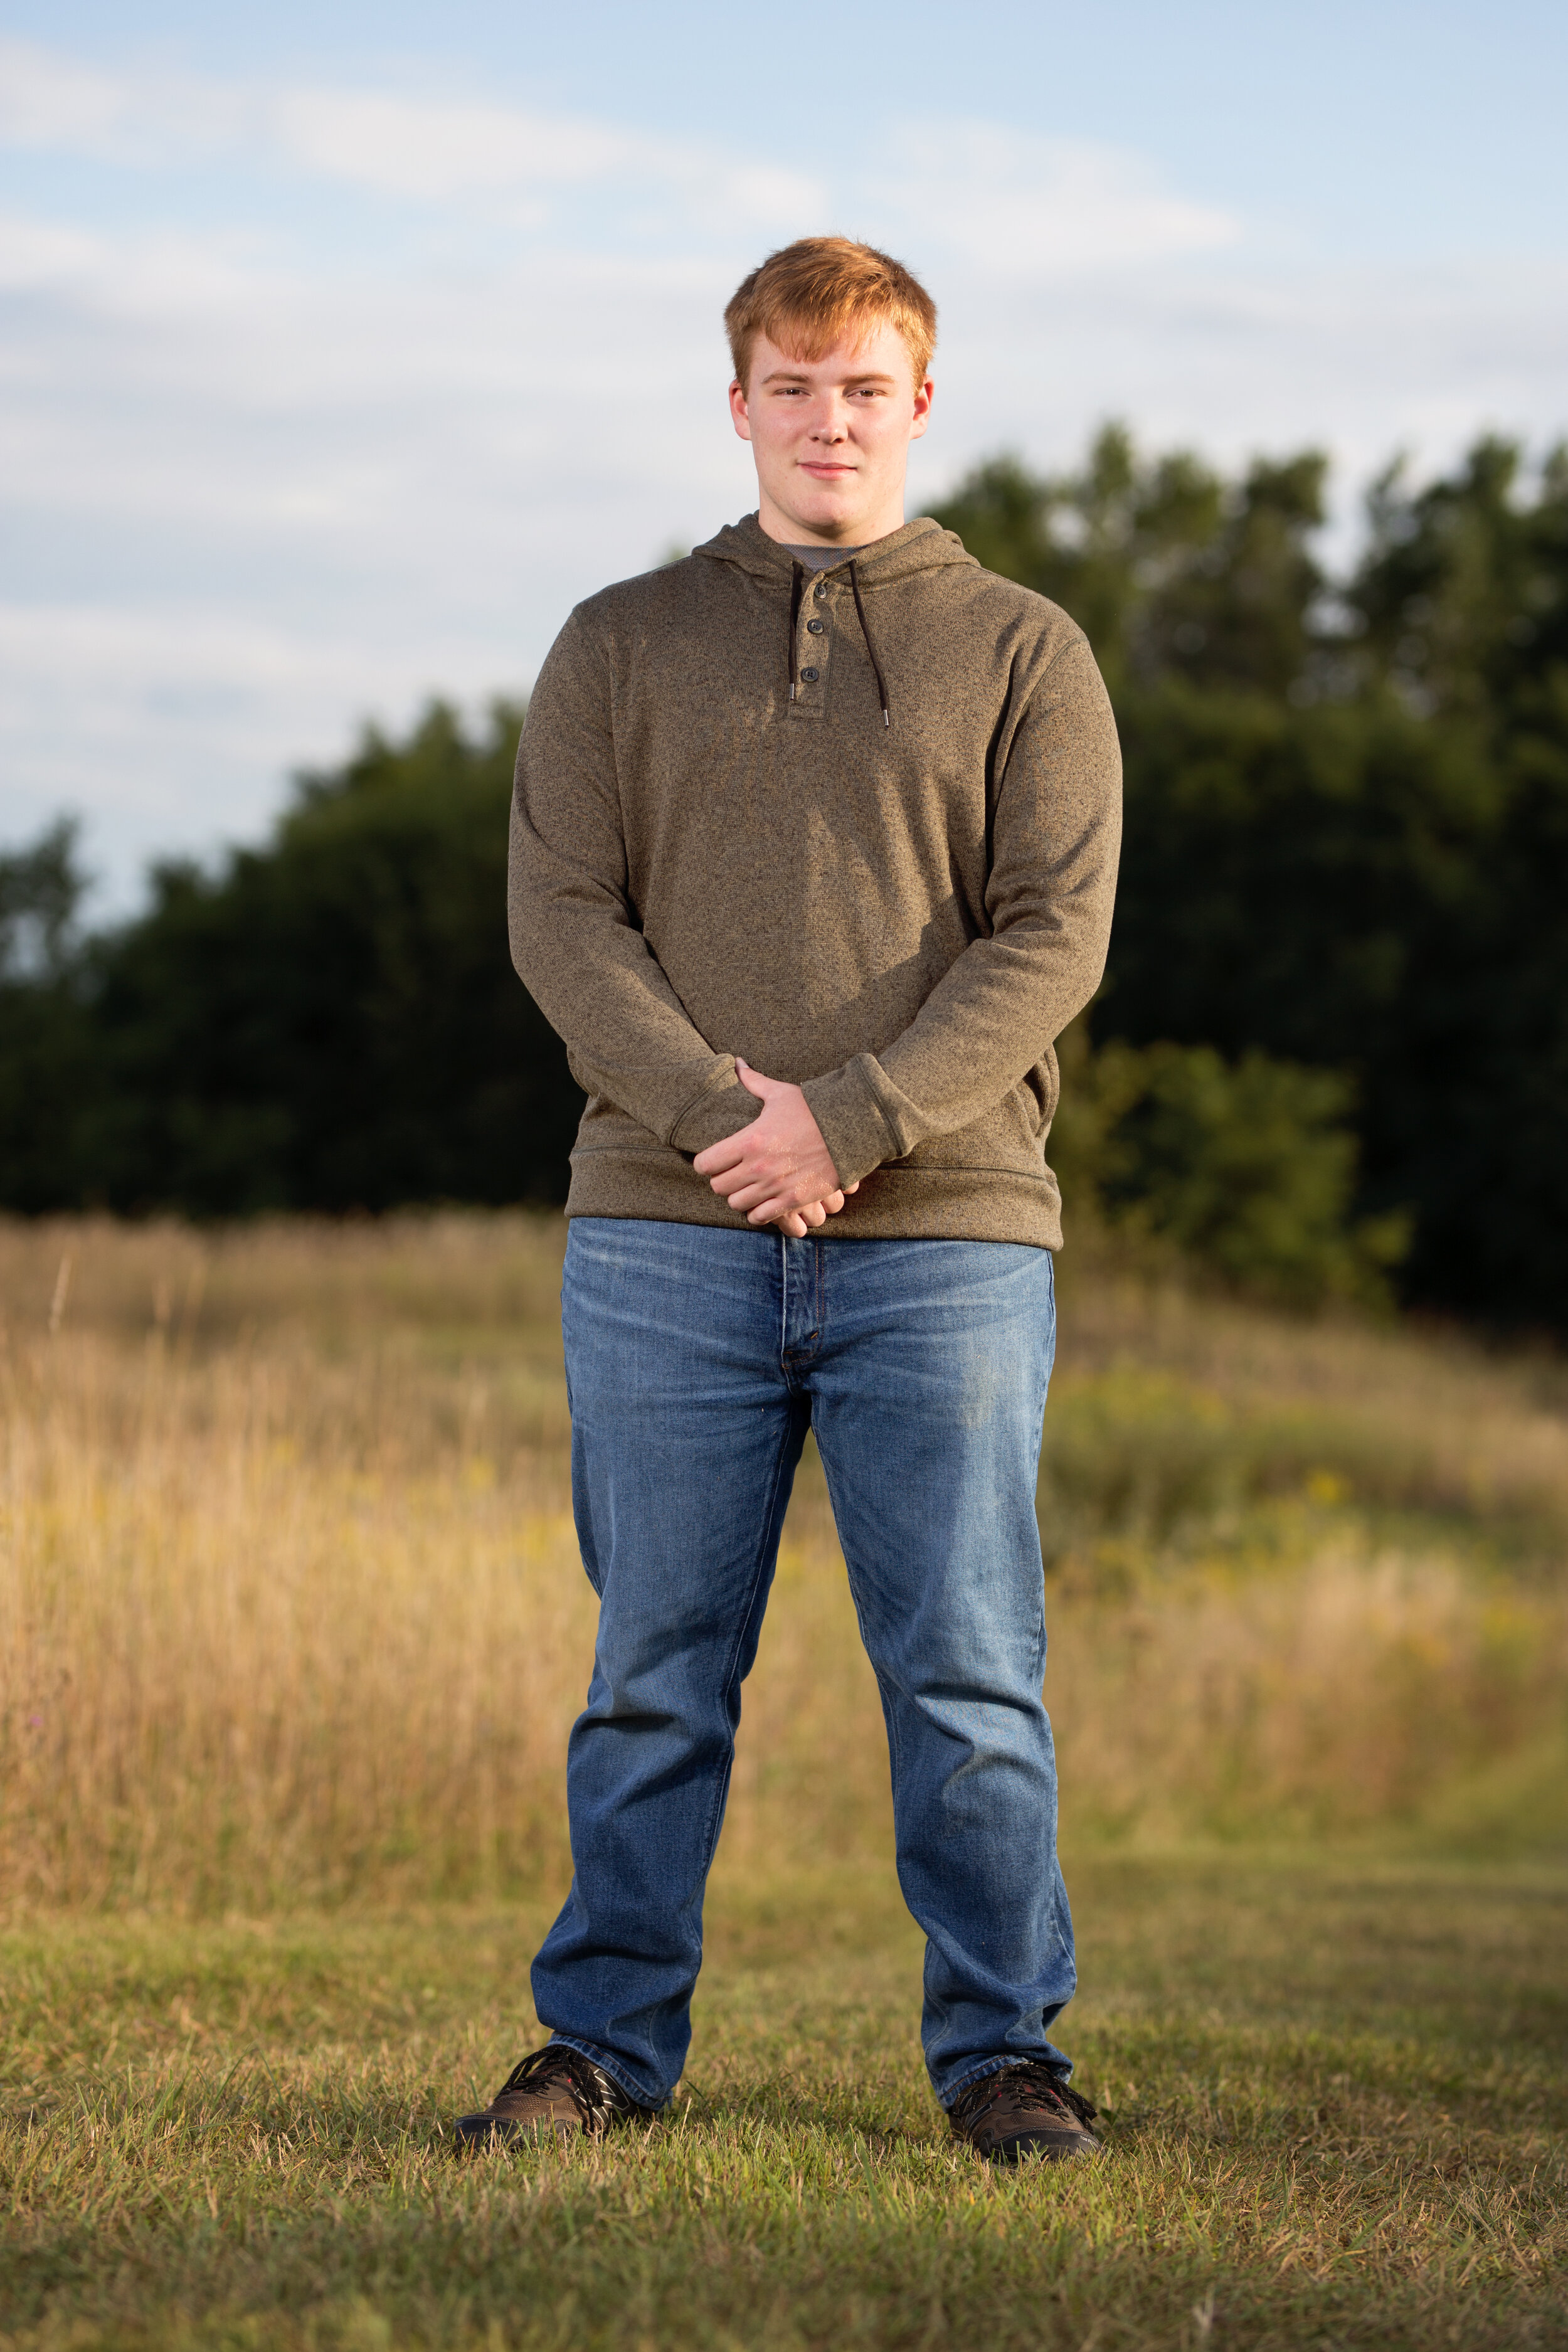 senior picture of boy standing